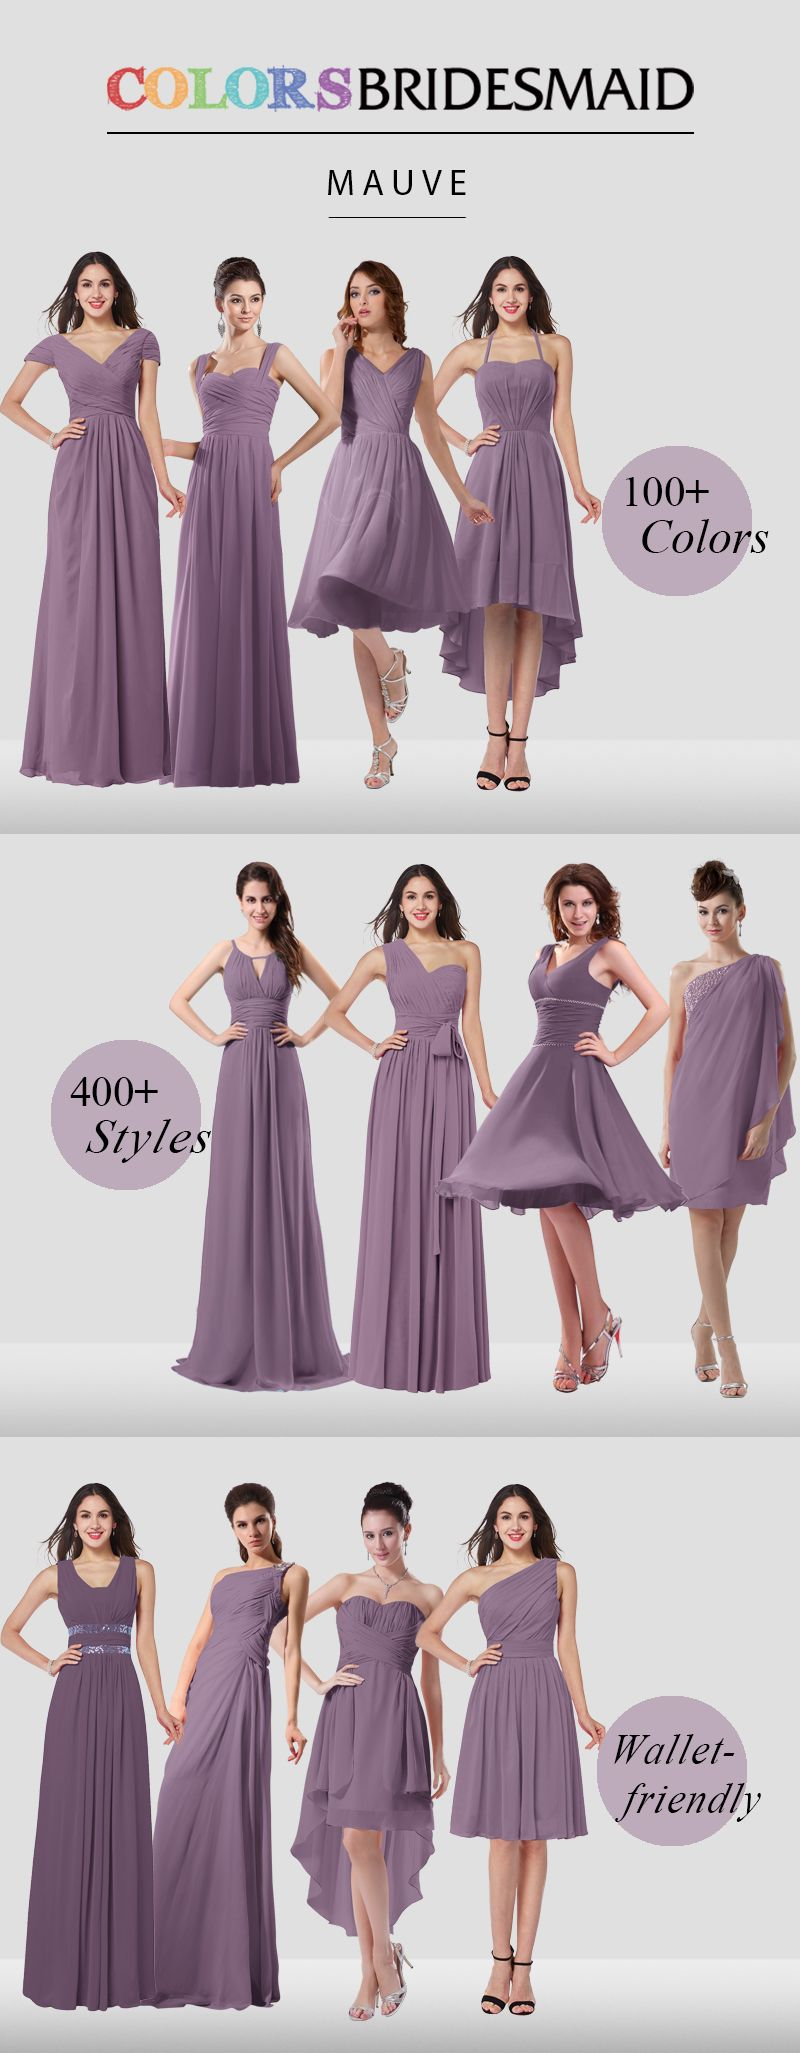 Bridesmaid dresses are all custom made to flatter your figure and ...